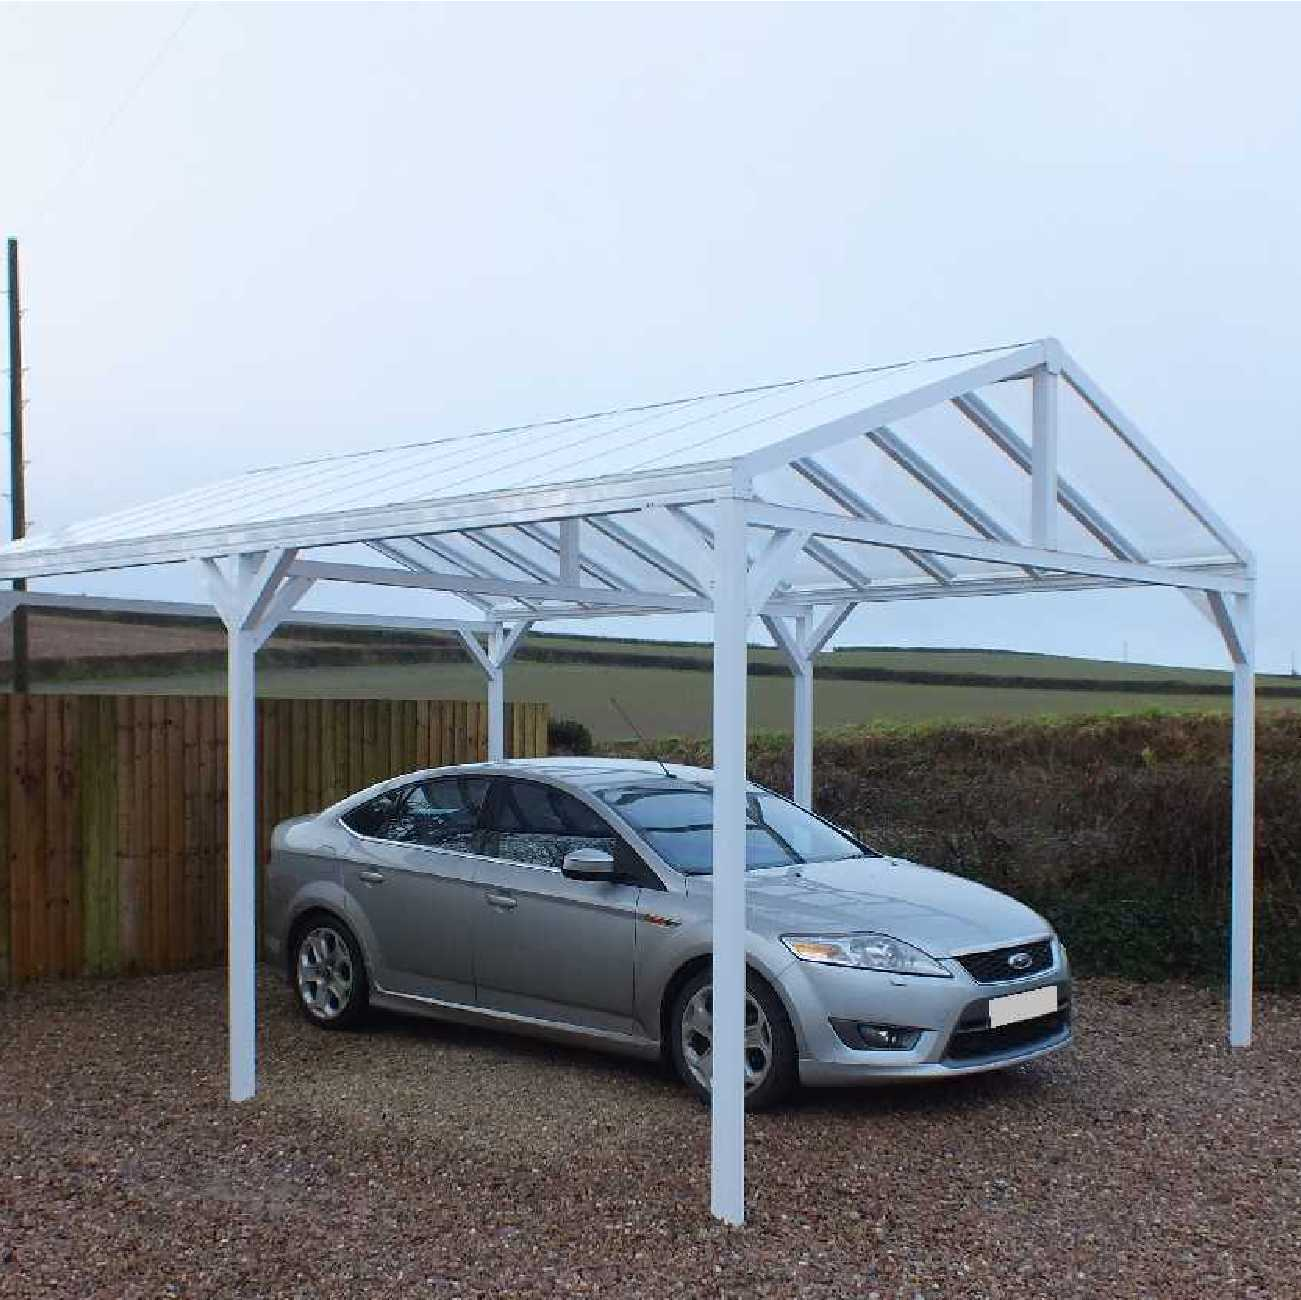 Affordable Omega Smart Free-Standing, Gable-Roof (type 1) Canopy with 16mm Polycarbonate Glazing - 6.3m (W) x 4.0m (P), (8) Supporting Posts